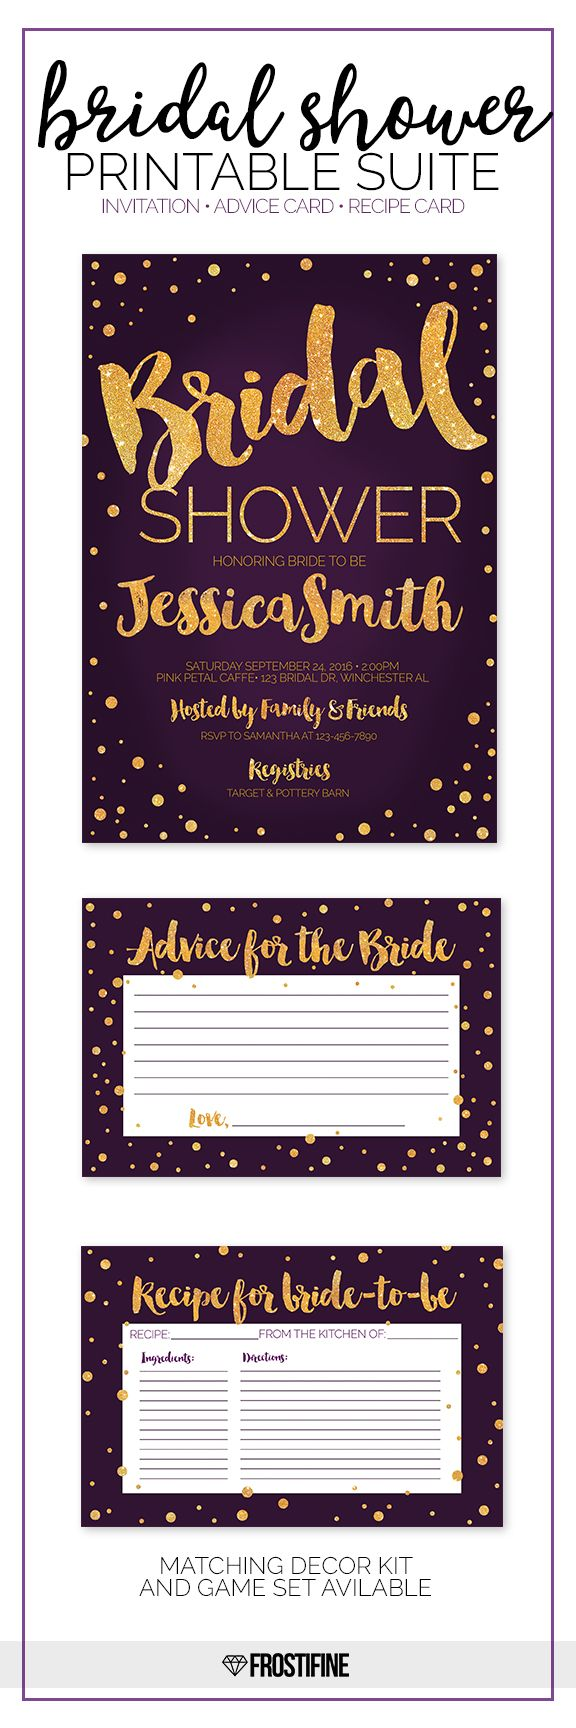 Glamorous bridal shower suite for your modern party theme. Plum purple with gold glitter details. Perfect bridal shower card to invite your guests and 2 entertainment cards - Advice for bride to be and recipe card for the most amazing party of the year to celebrate and shower the bride-to-be.